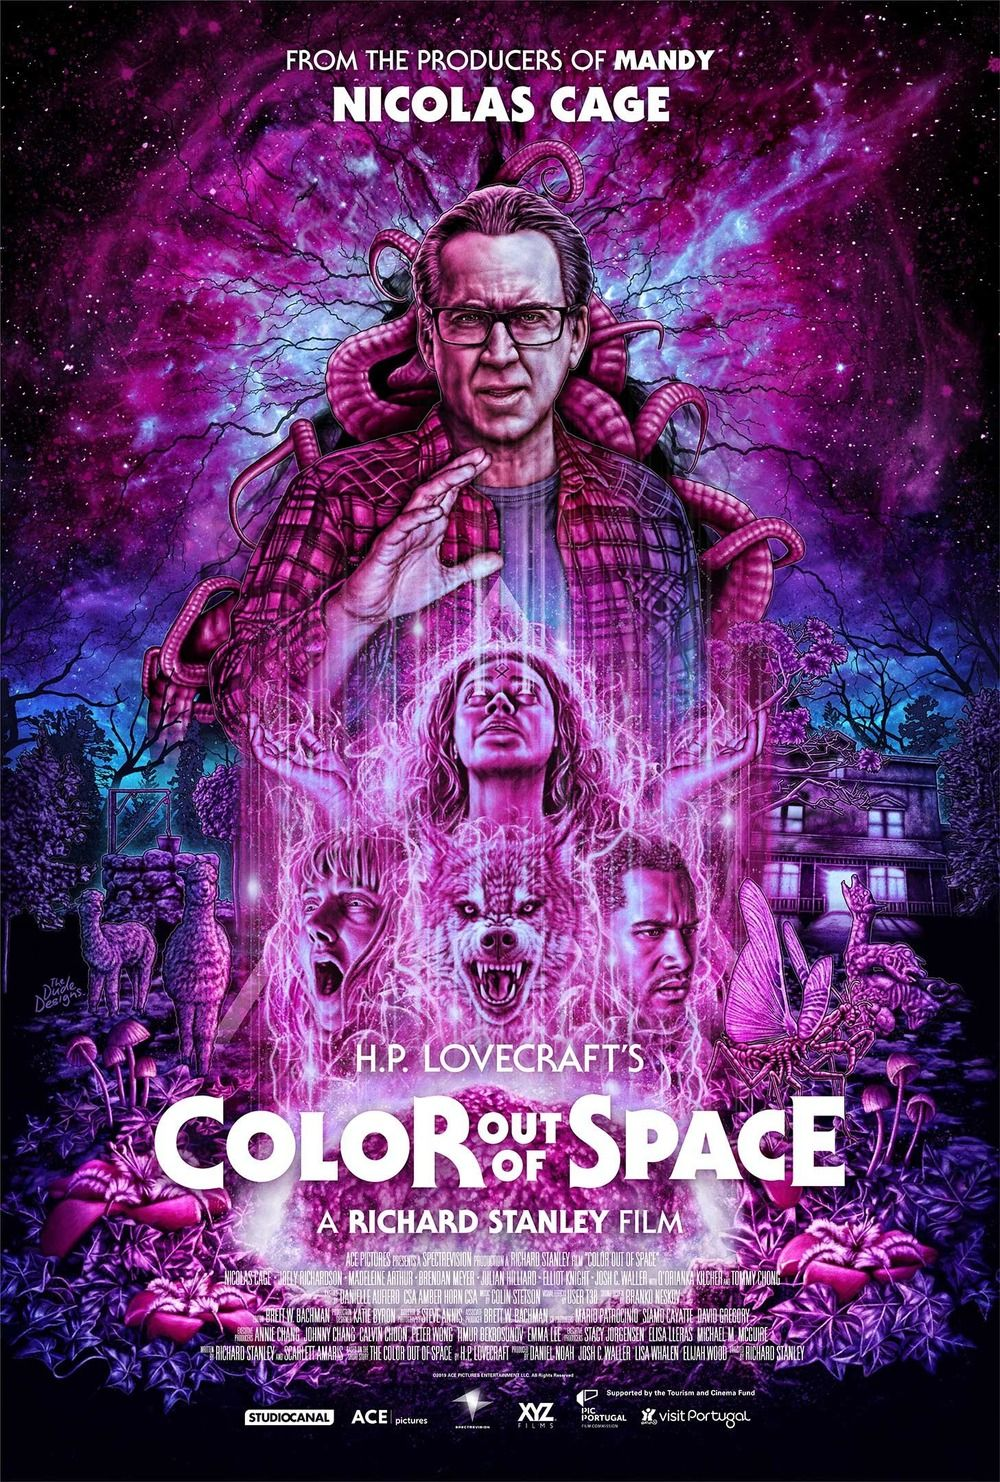 Color out of space in 2020 color out of space nicolas